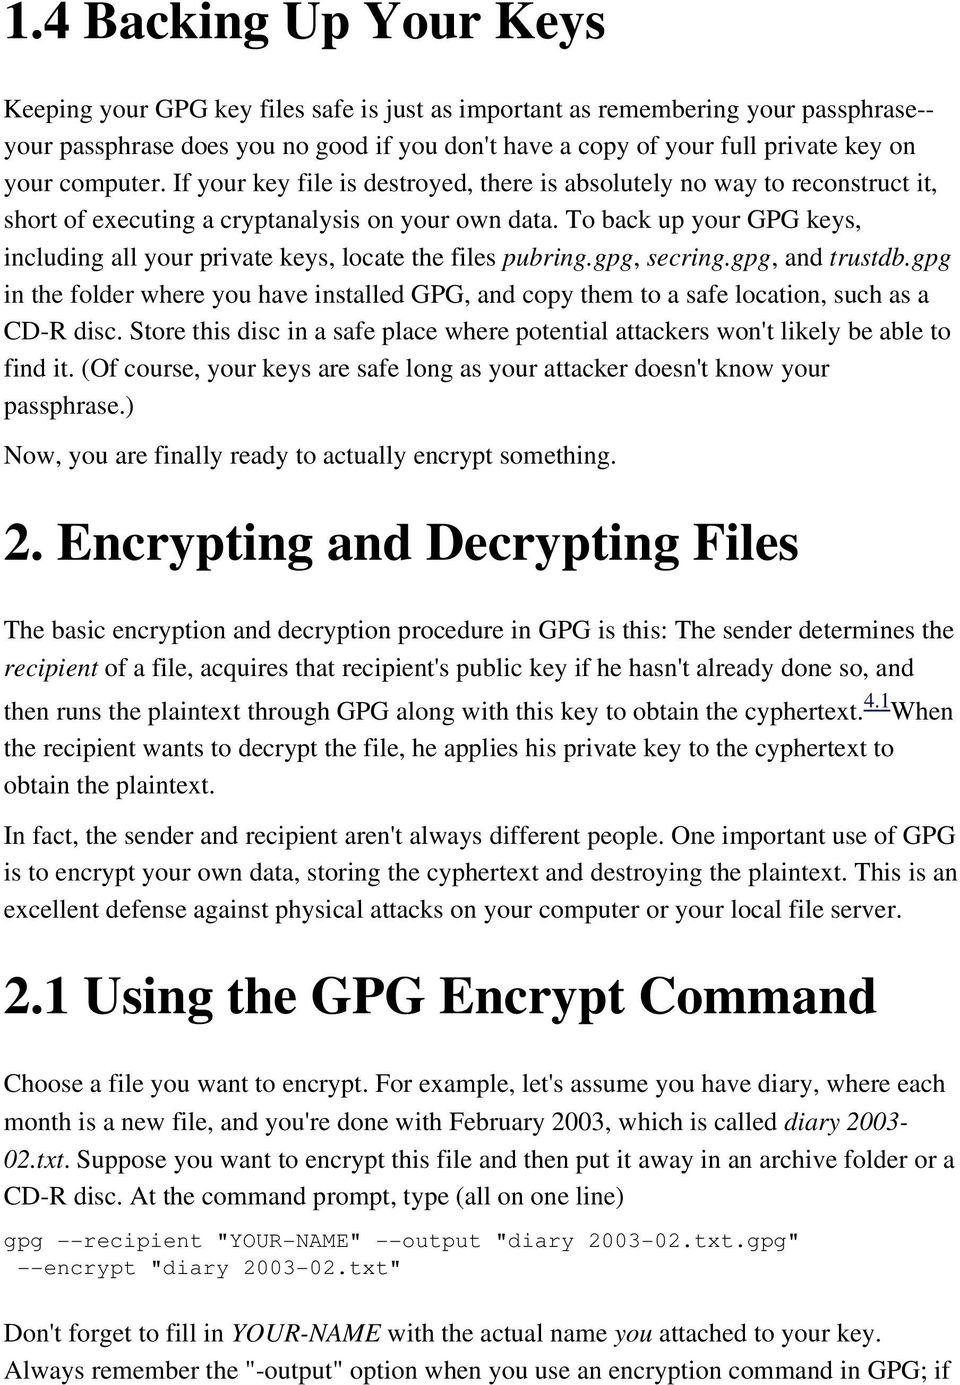 To back up your GPG keys, including all your private keys, locate the files pubring.gpg, secring.gpg, and trustdb.